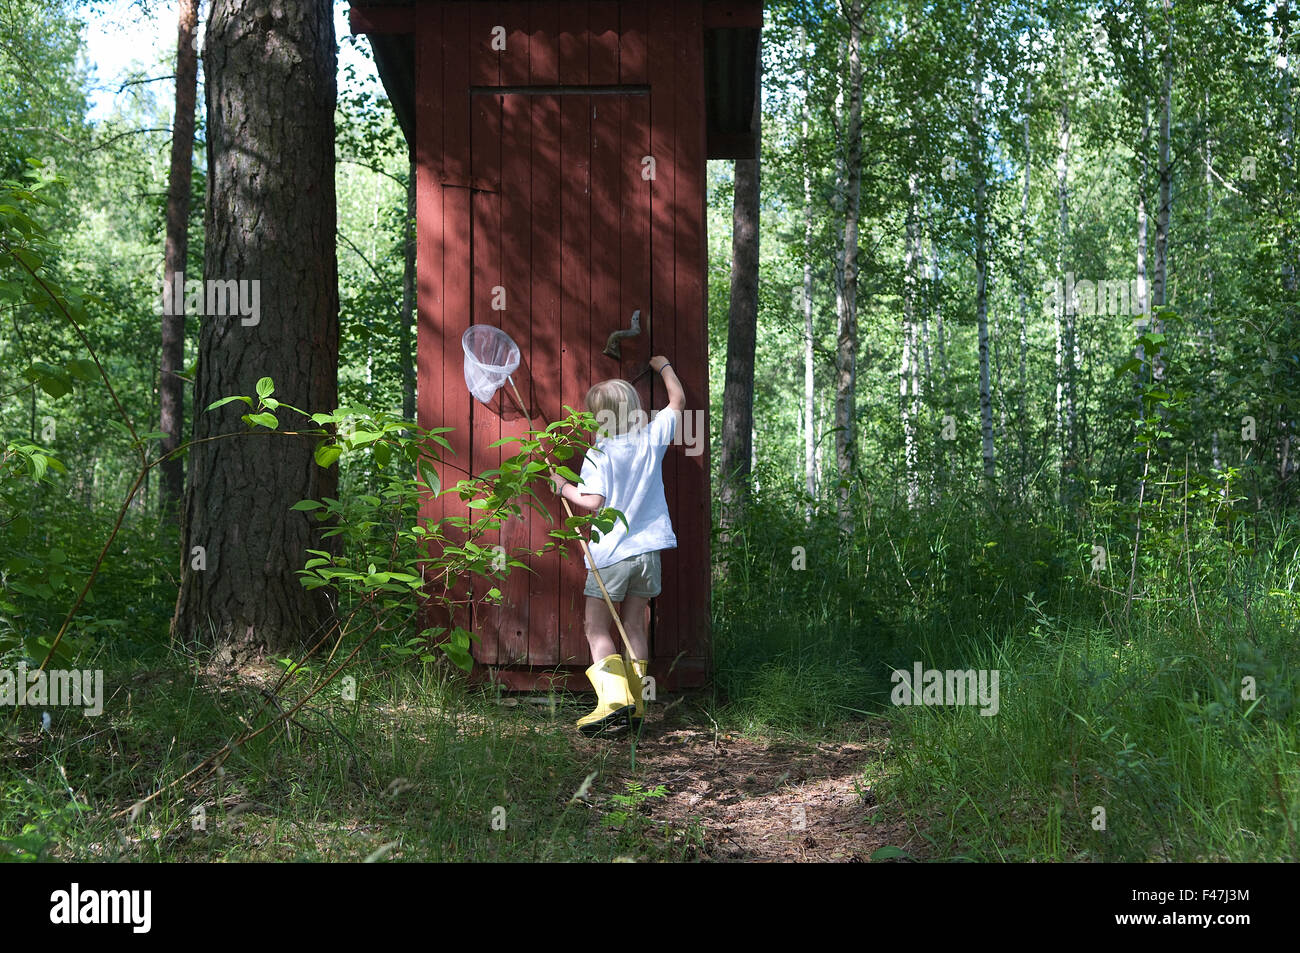 Girl running to an outhouse, Sweden. - Stock Image